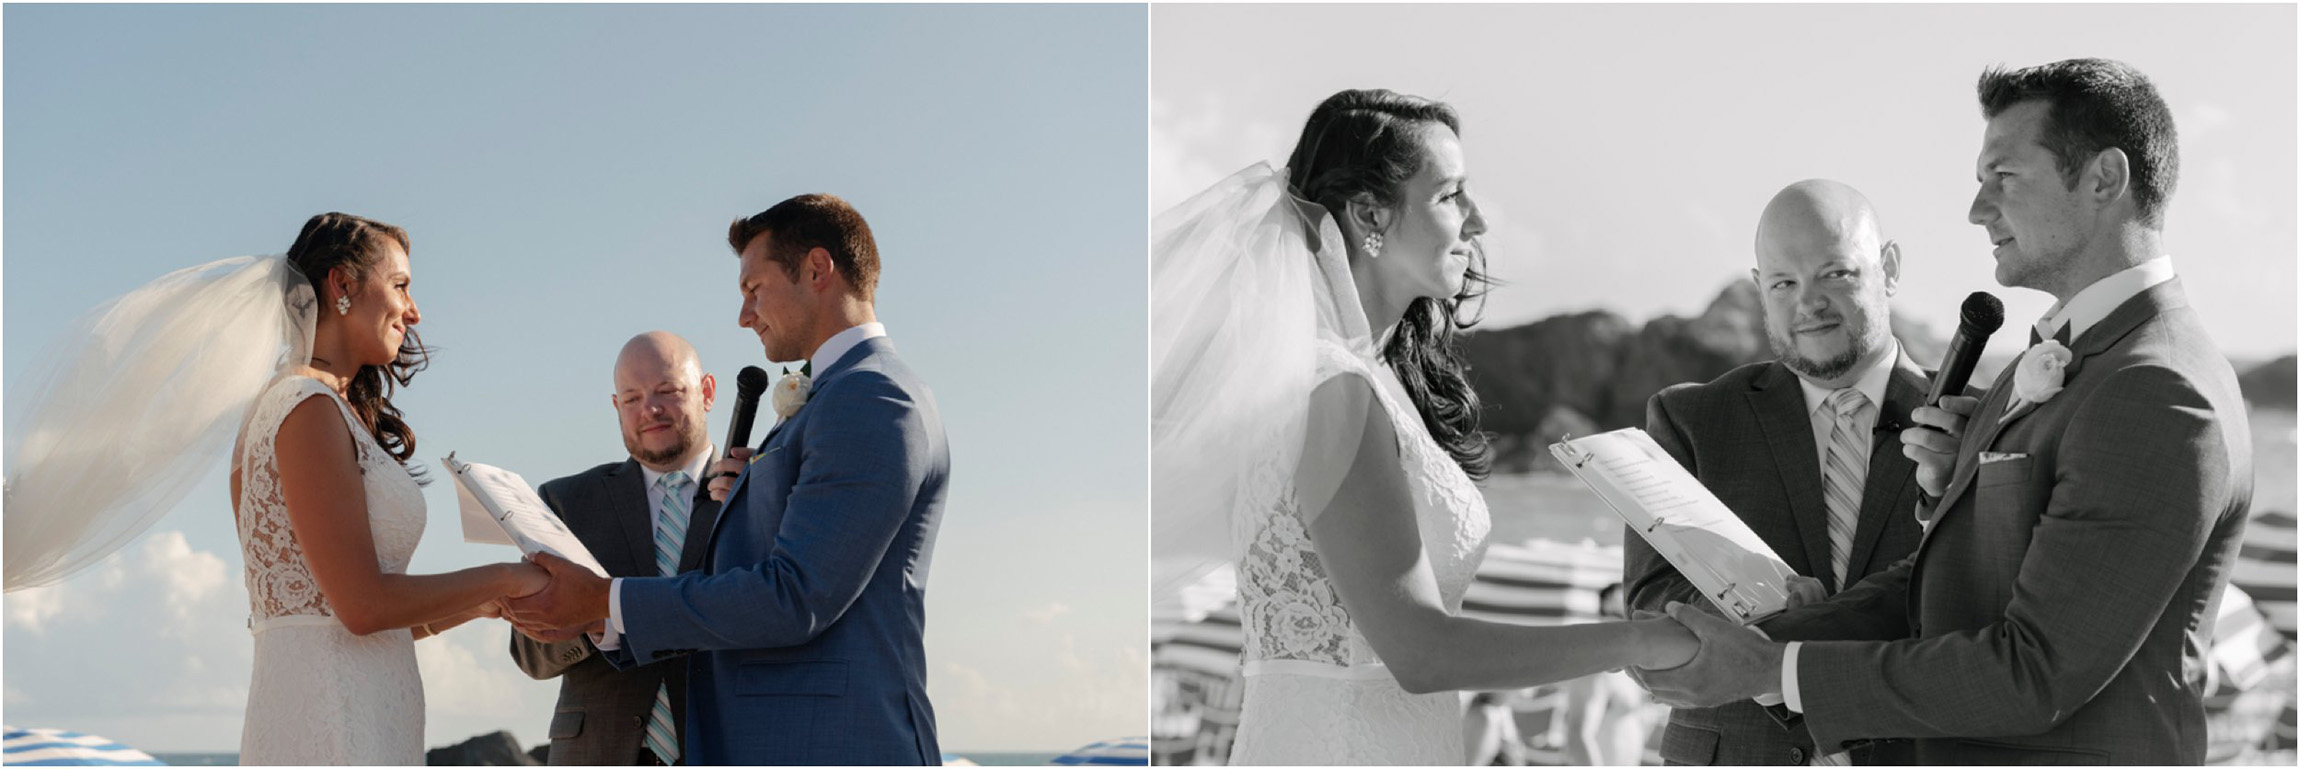 ©FianderFoto_Bermuda Wedding Photographer_Fairmont Southampton_Wedding_Anna_Thomas_052.jpg